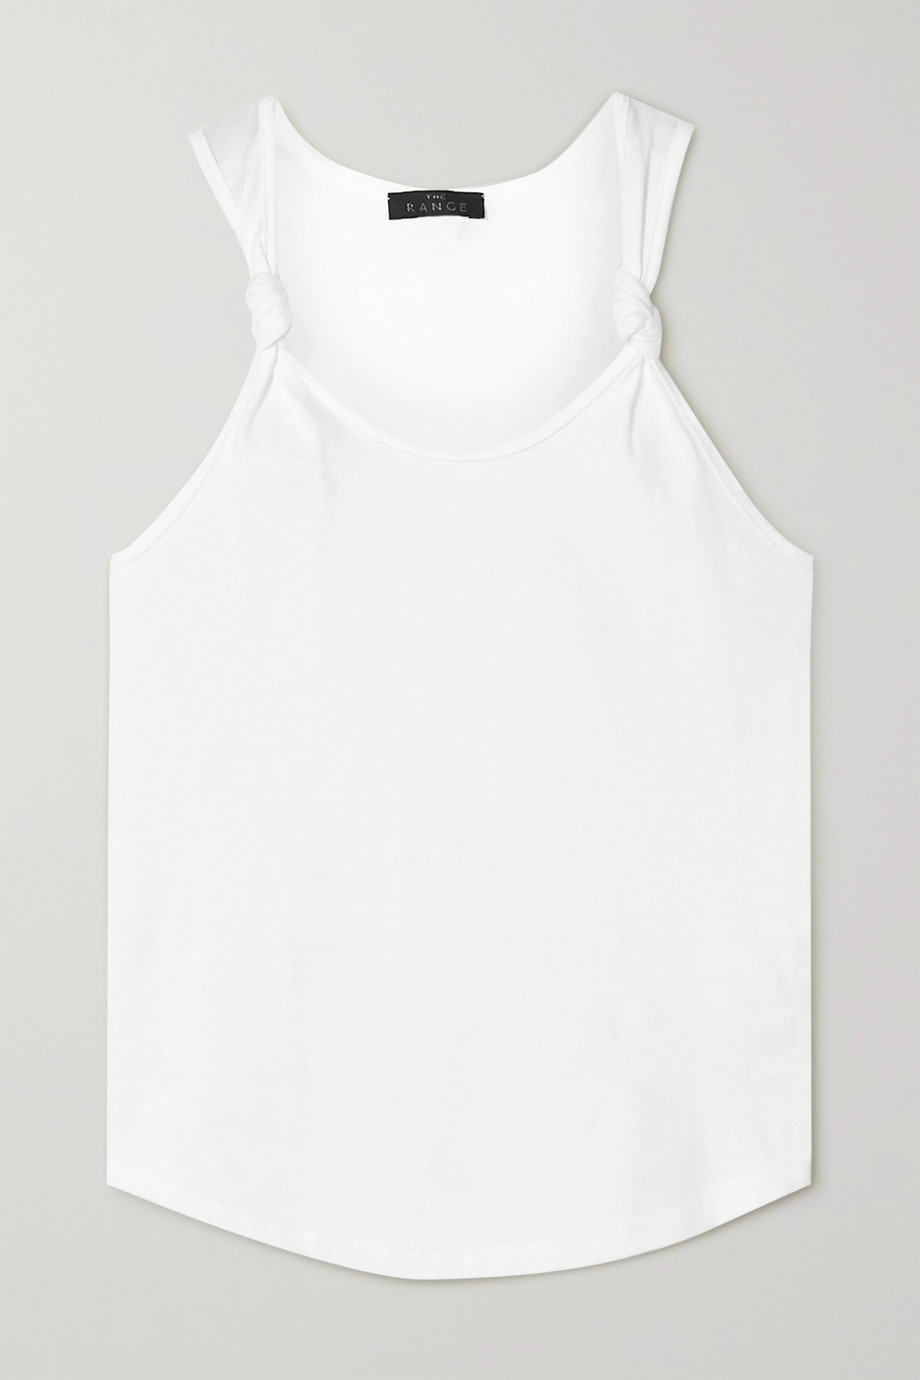 The Range Substance knotted cotton-jersey tank